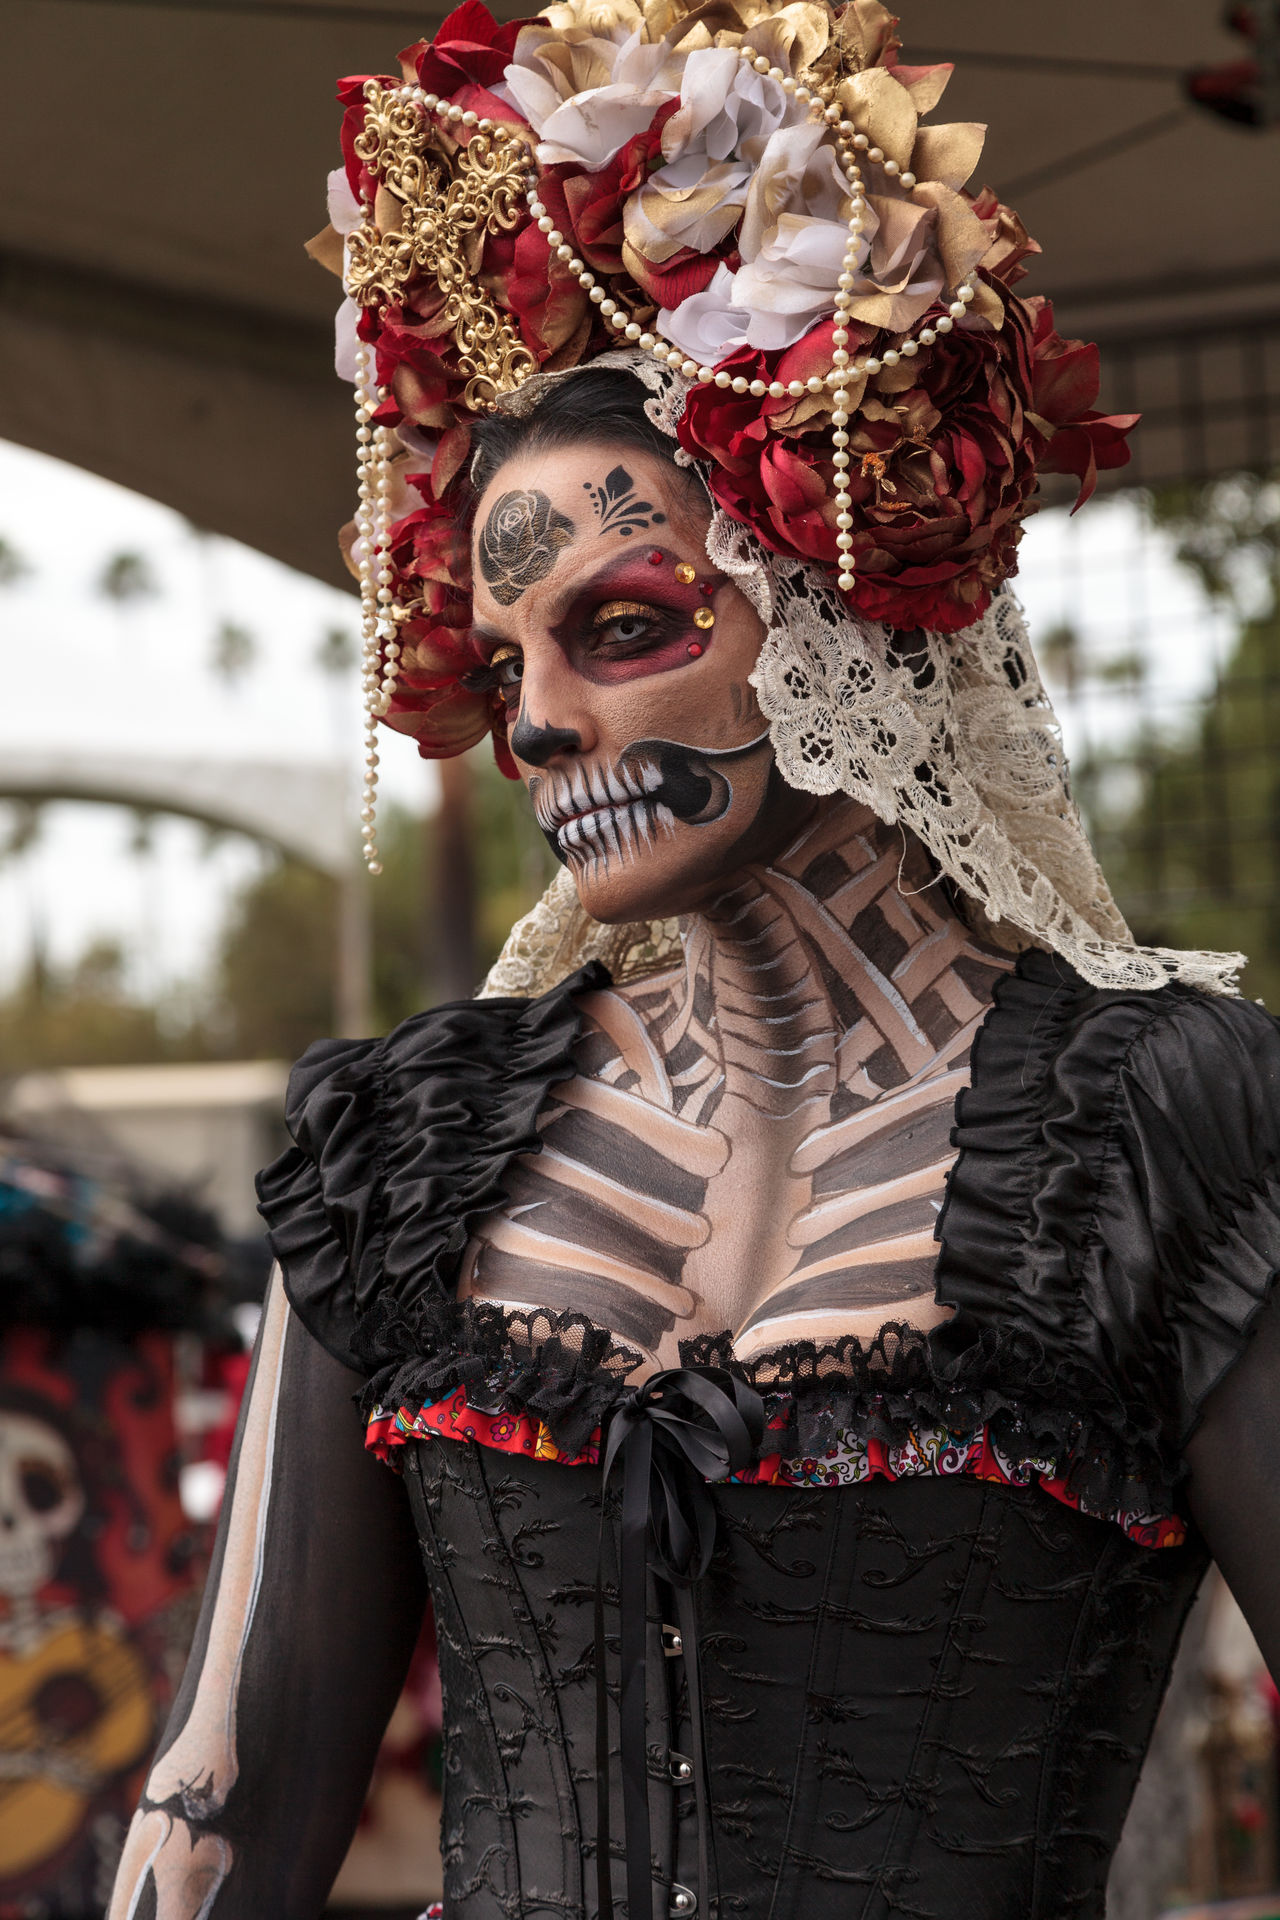 Los Angeles, CA, USA - October 29, 2016: Skeleton woman performer at Dia de los Muertos, Day of the dead, in Los Angeles at the Hollywood Forever Cemetery grounds. Editorial use only. Adult Adults Only Beauty Carnival Crowds And Details Cultures Day Headdress Human Body Part Men One Person Only Men Outdoors People Performance Portrait Skeleton Stage Make-up Woman Women Young Adult